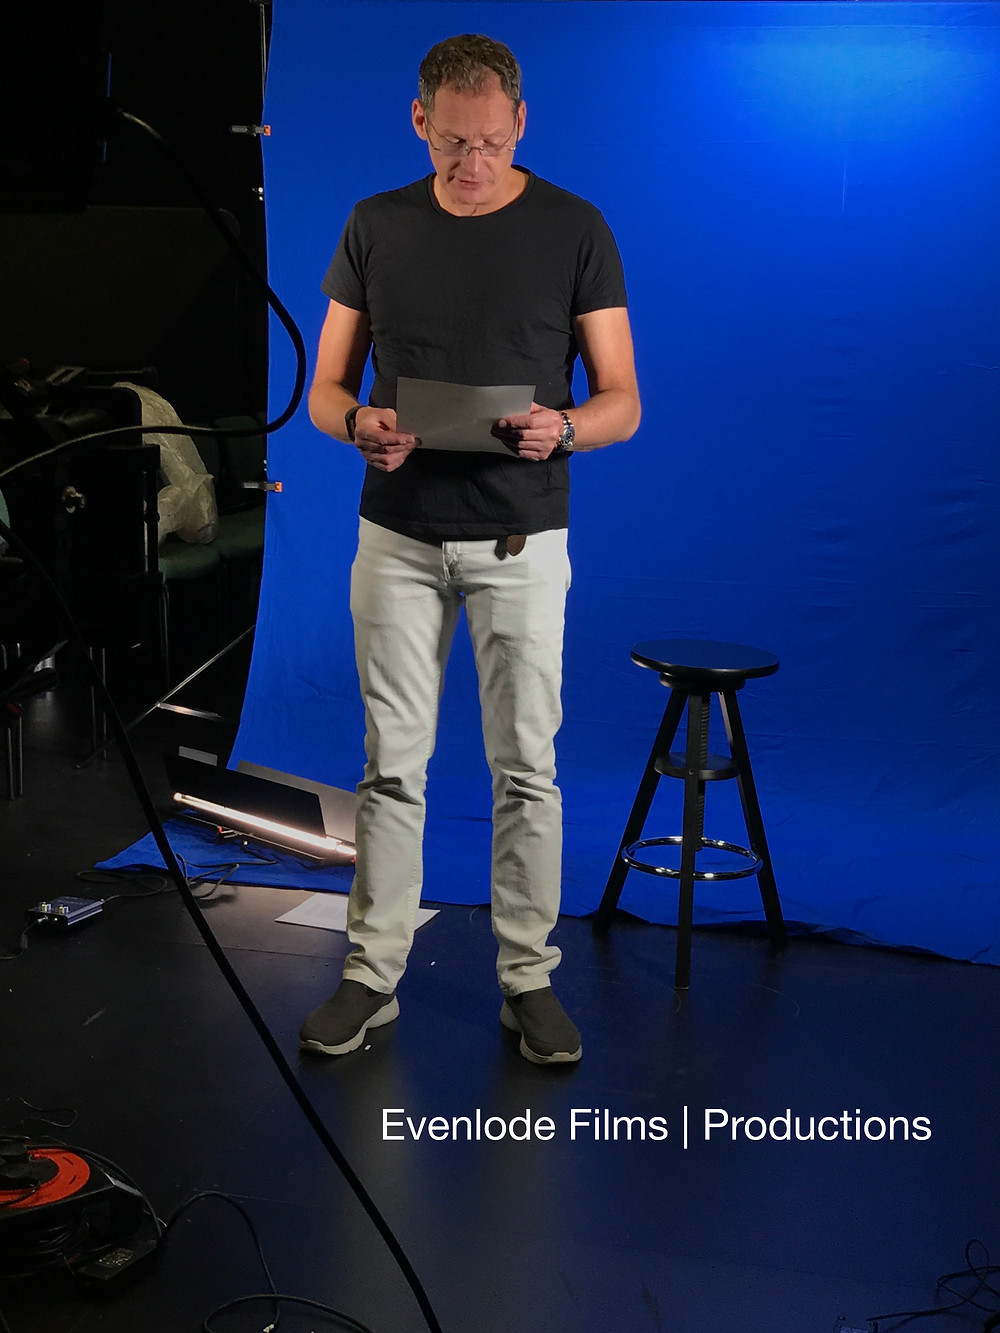 Mark Lester in the studio with Evenlode Films